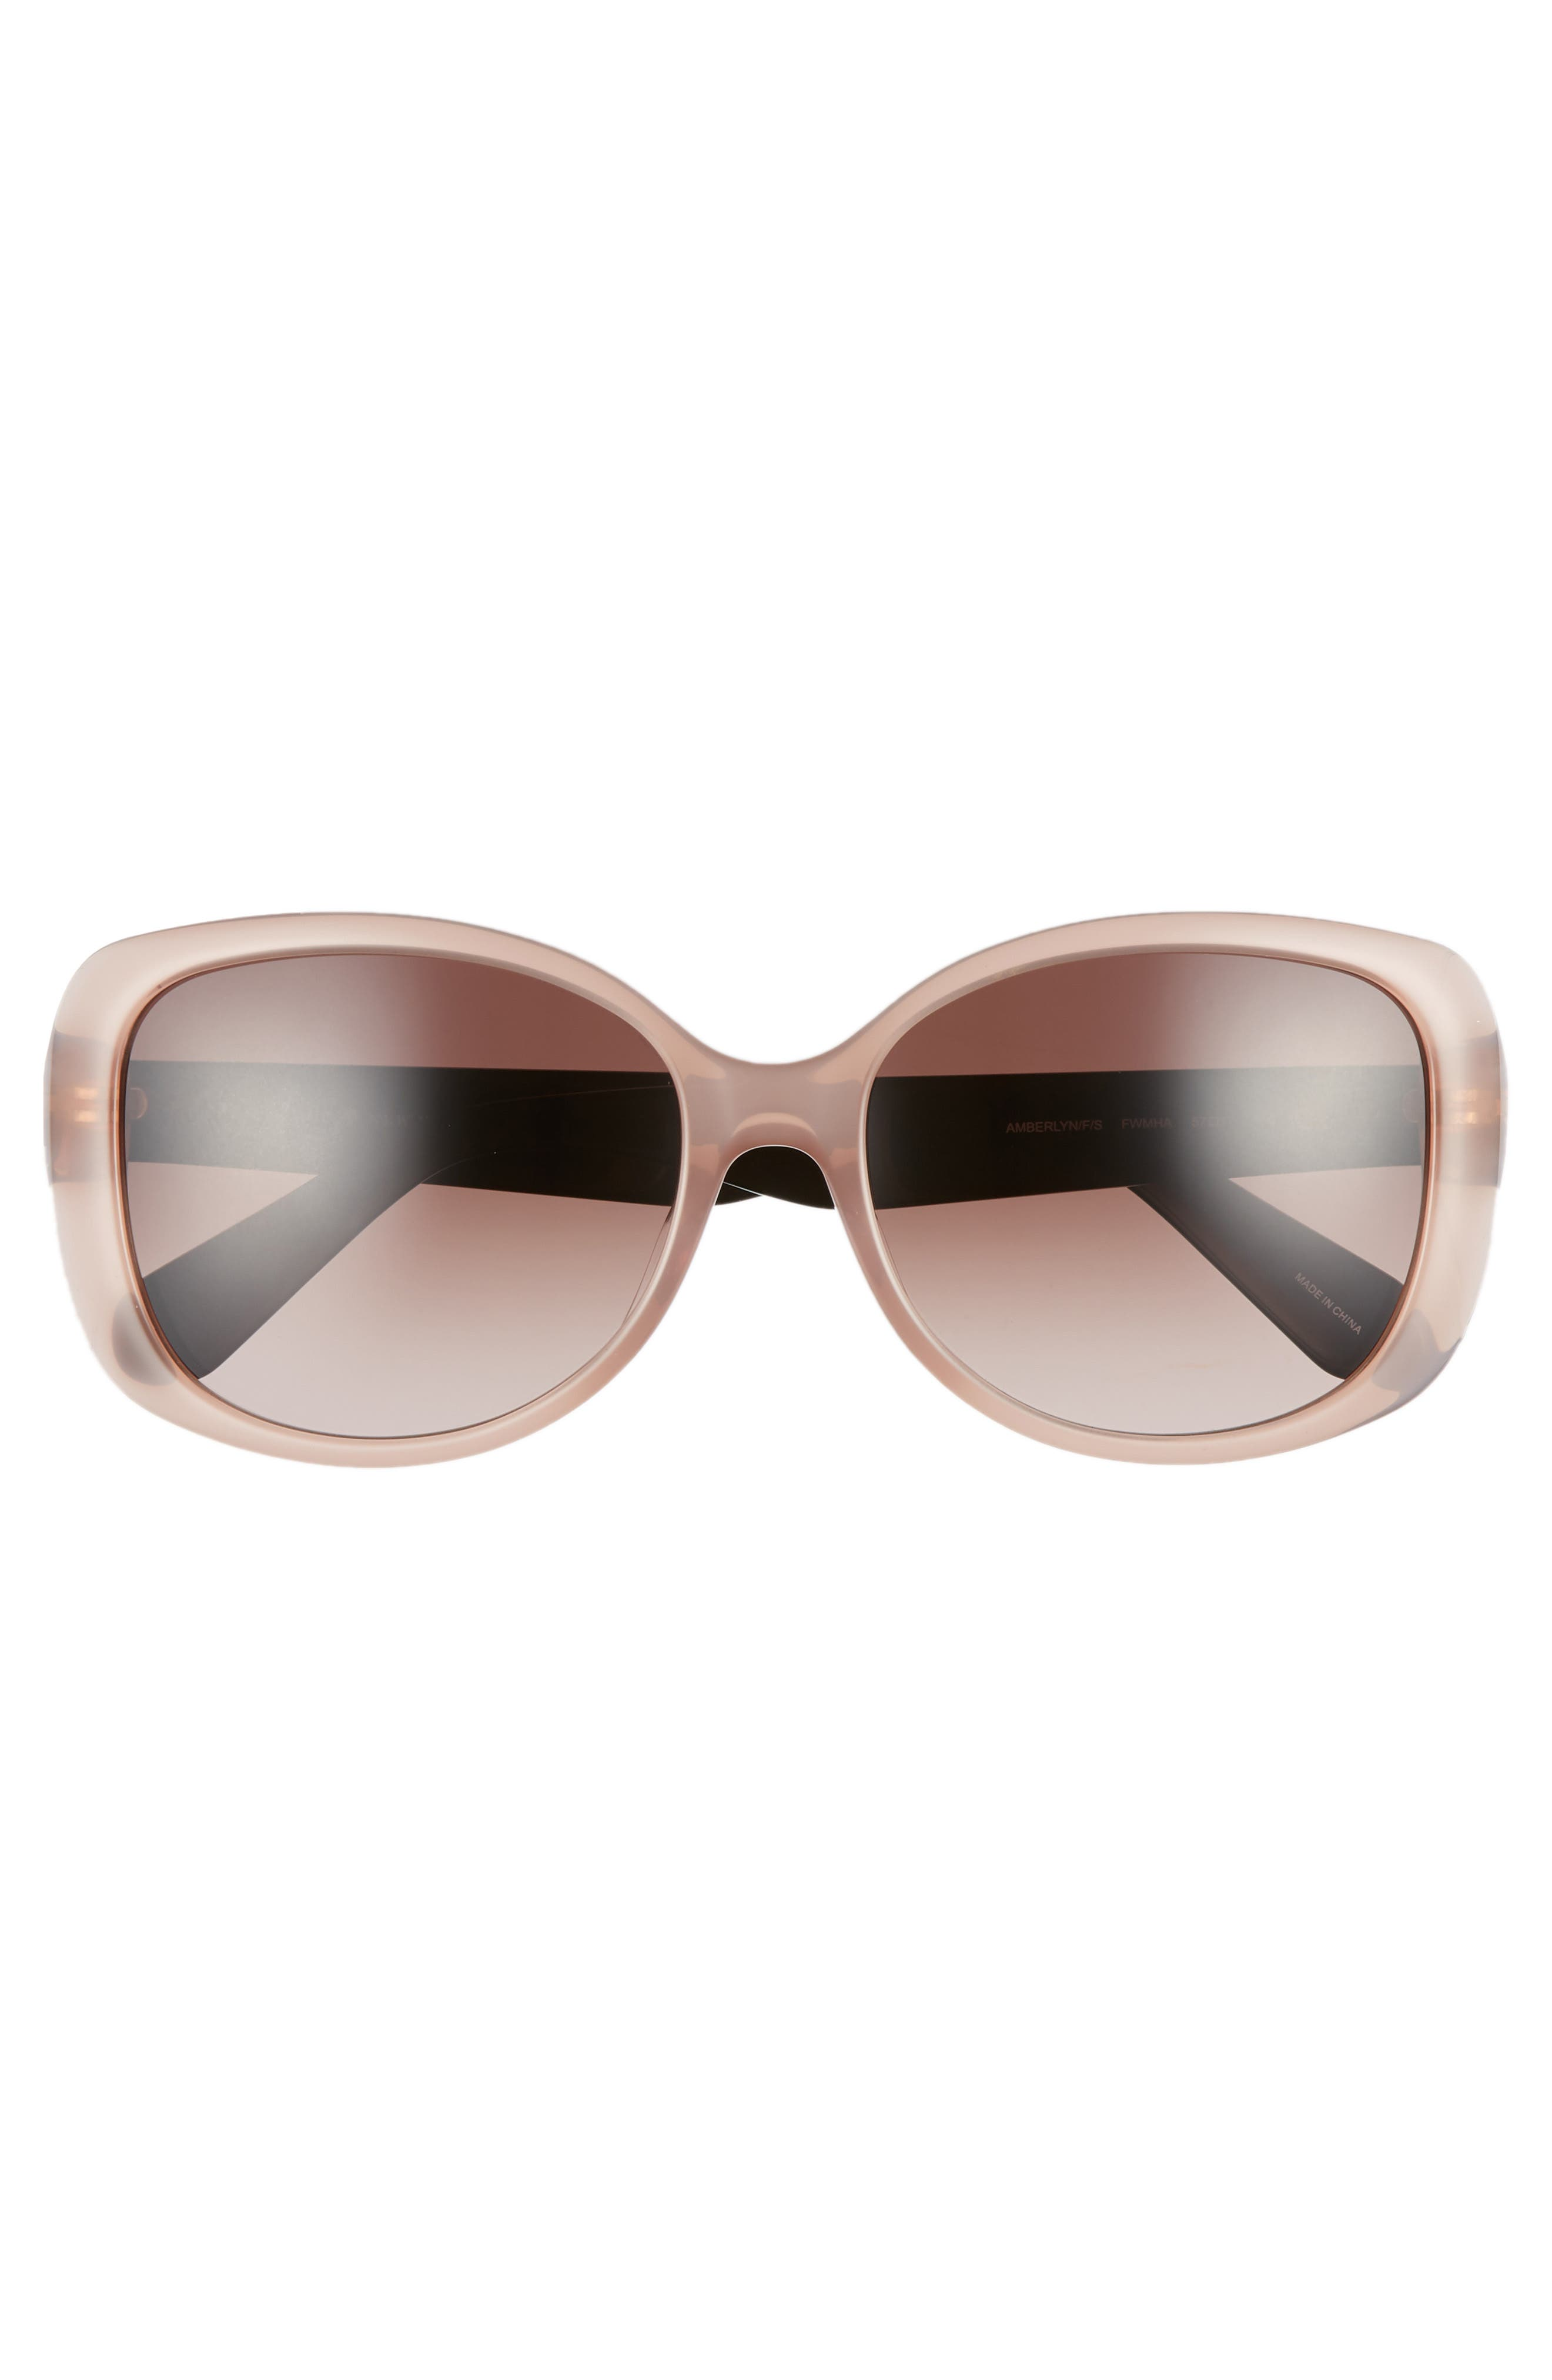 amberlyn 57mm special fit square sunglasses,                             Alternate thumbnail 3, color,                             NUDE